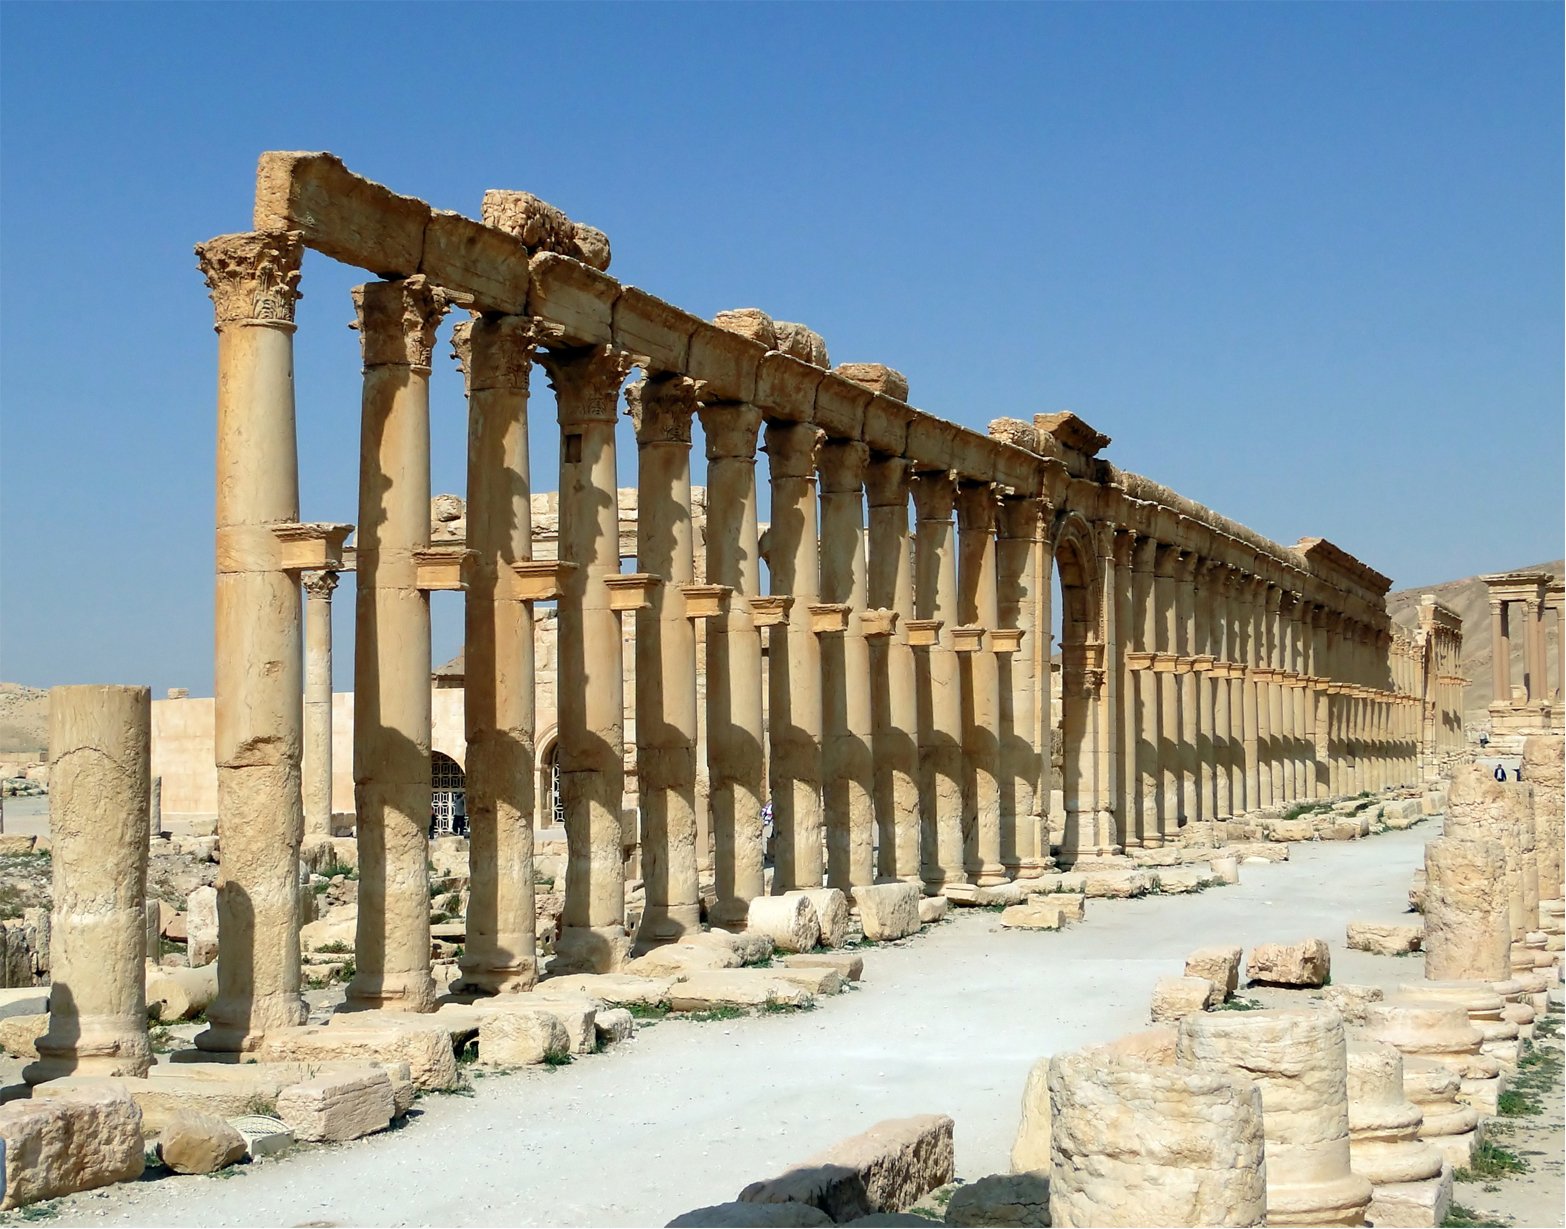 Palmyra's main street was one of the longest and most monumental in the eastern Roman Empire Wiki Commons